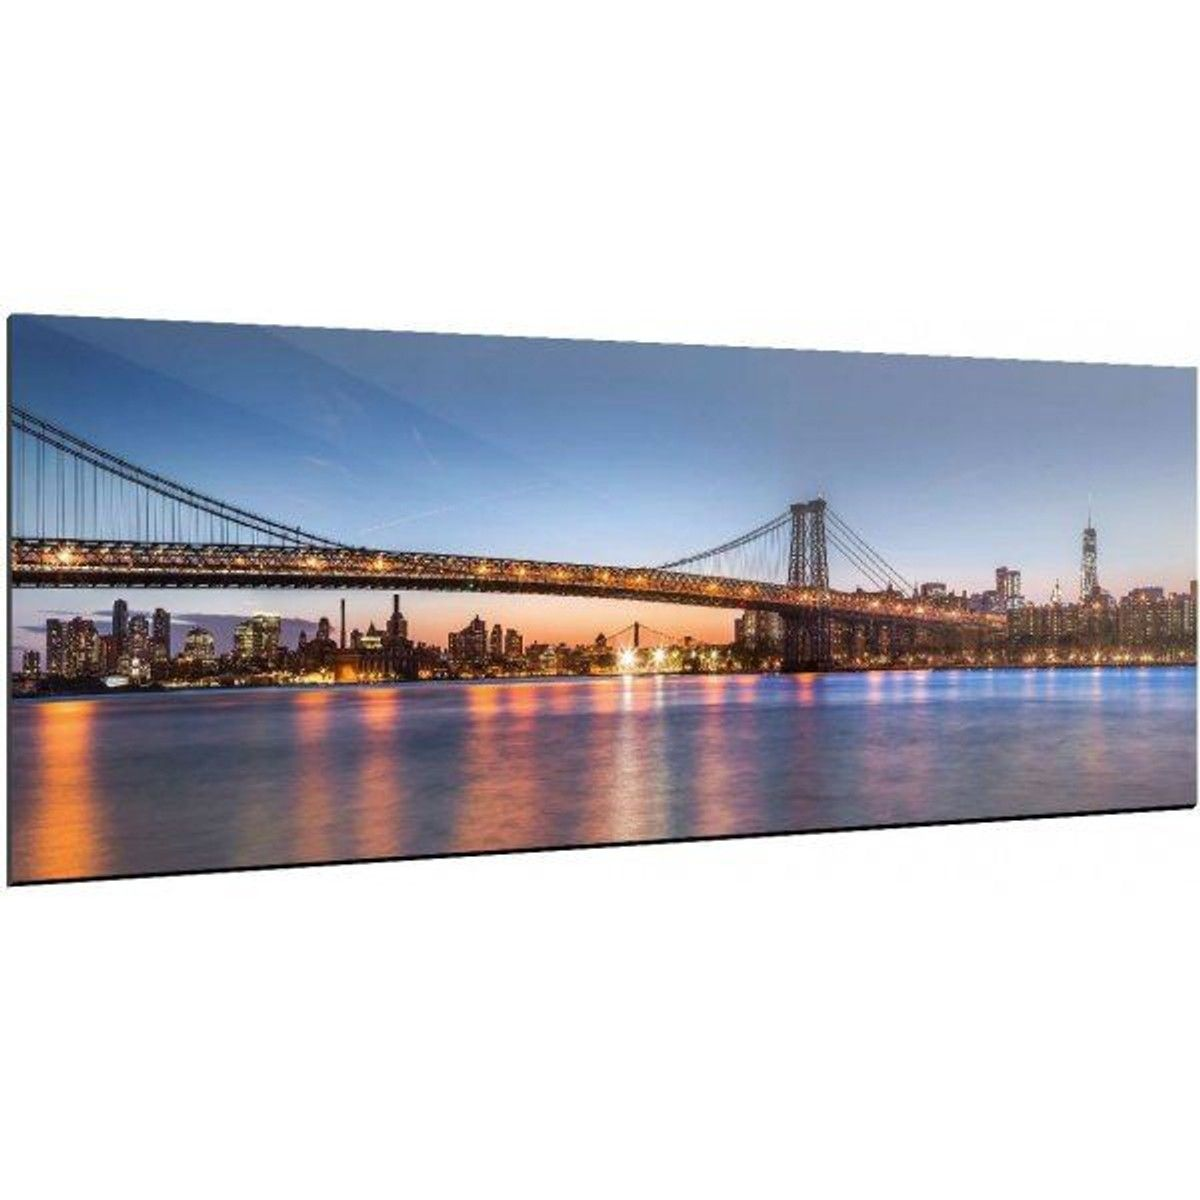 Tableau New York Bridge Recollection 120 X 40 Taille New York Photographie Photographie Art De La Photographie